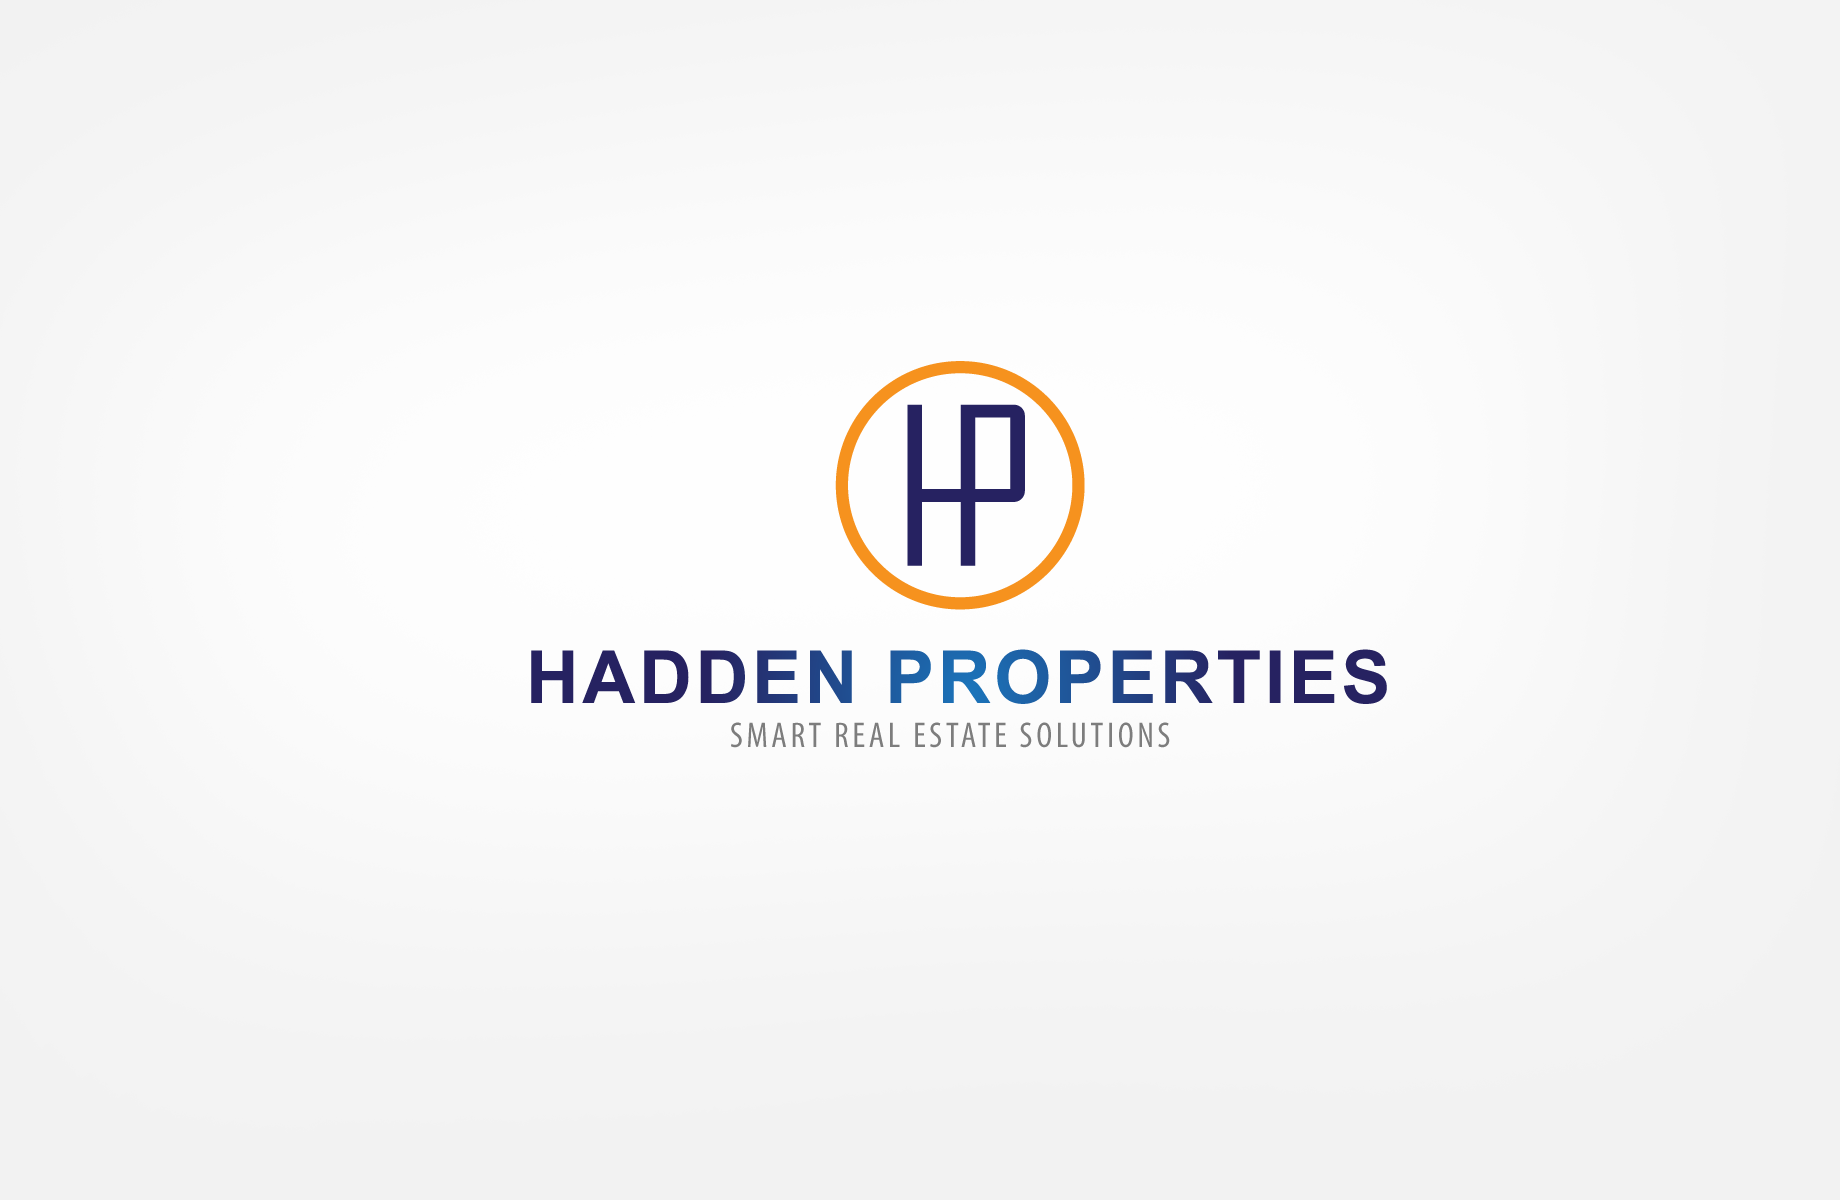 Logo Design by Jan Chua - Entry No. 57 in the Logo Design Contest Artistic Logo Design for Hadden Properties.